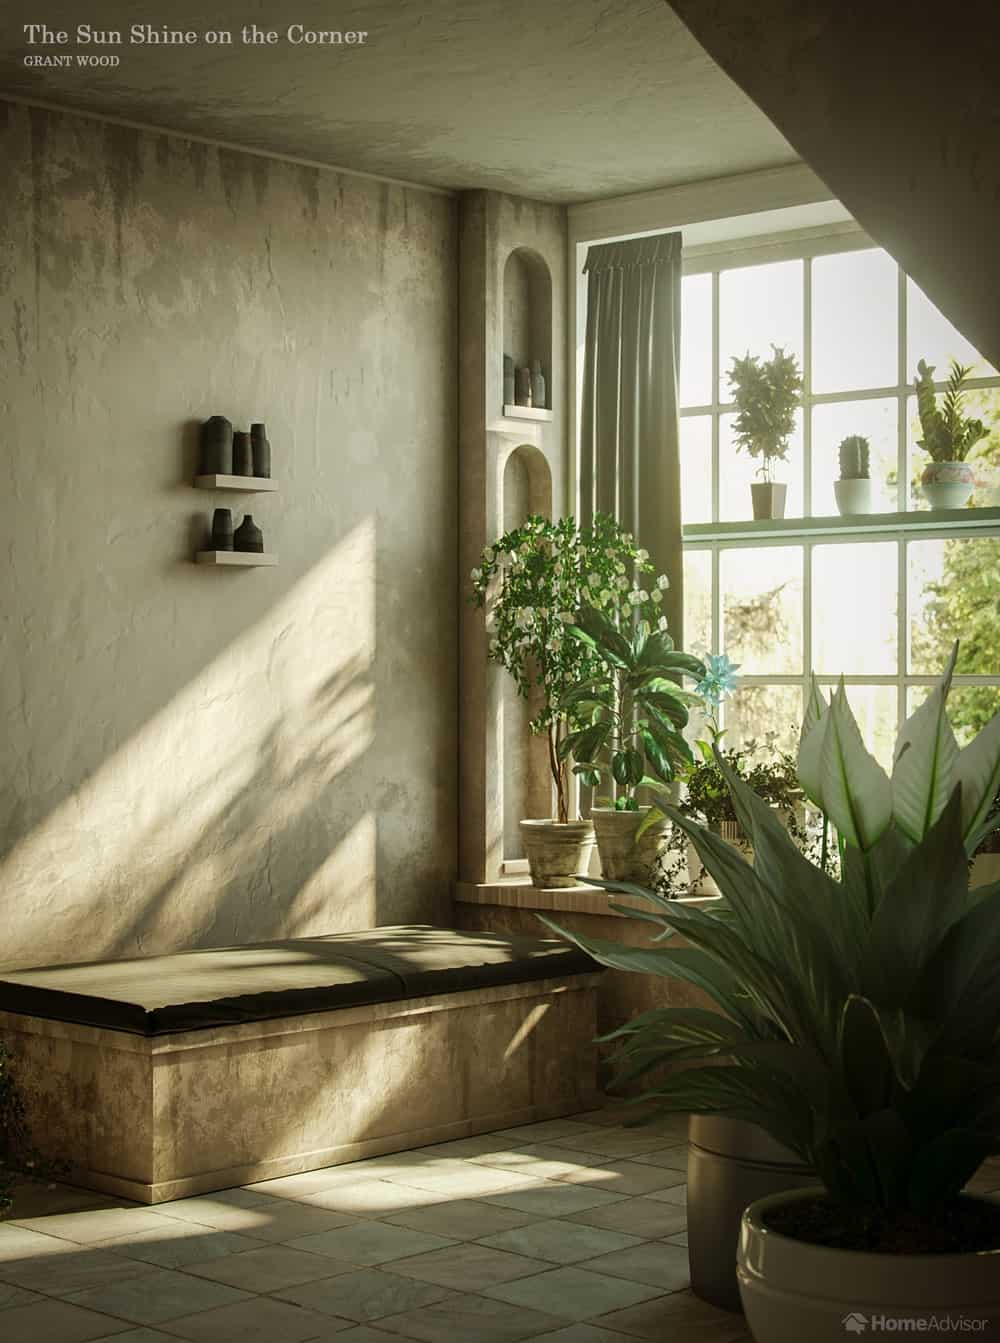 HomeAdvisor's real-life rendition of The Sun Shine on the Corner by Grant Wood